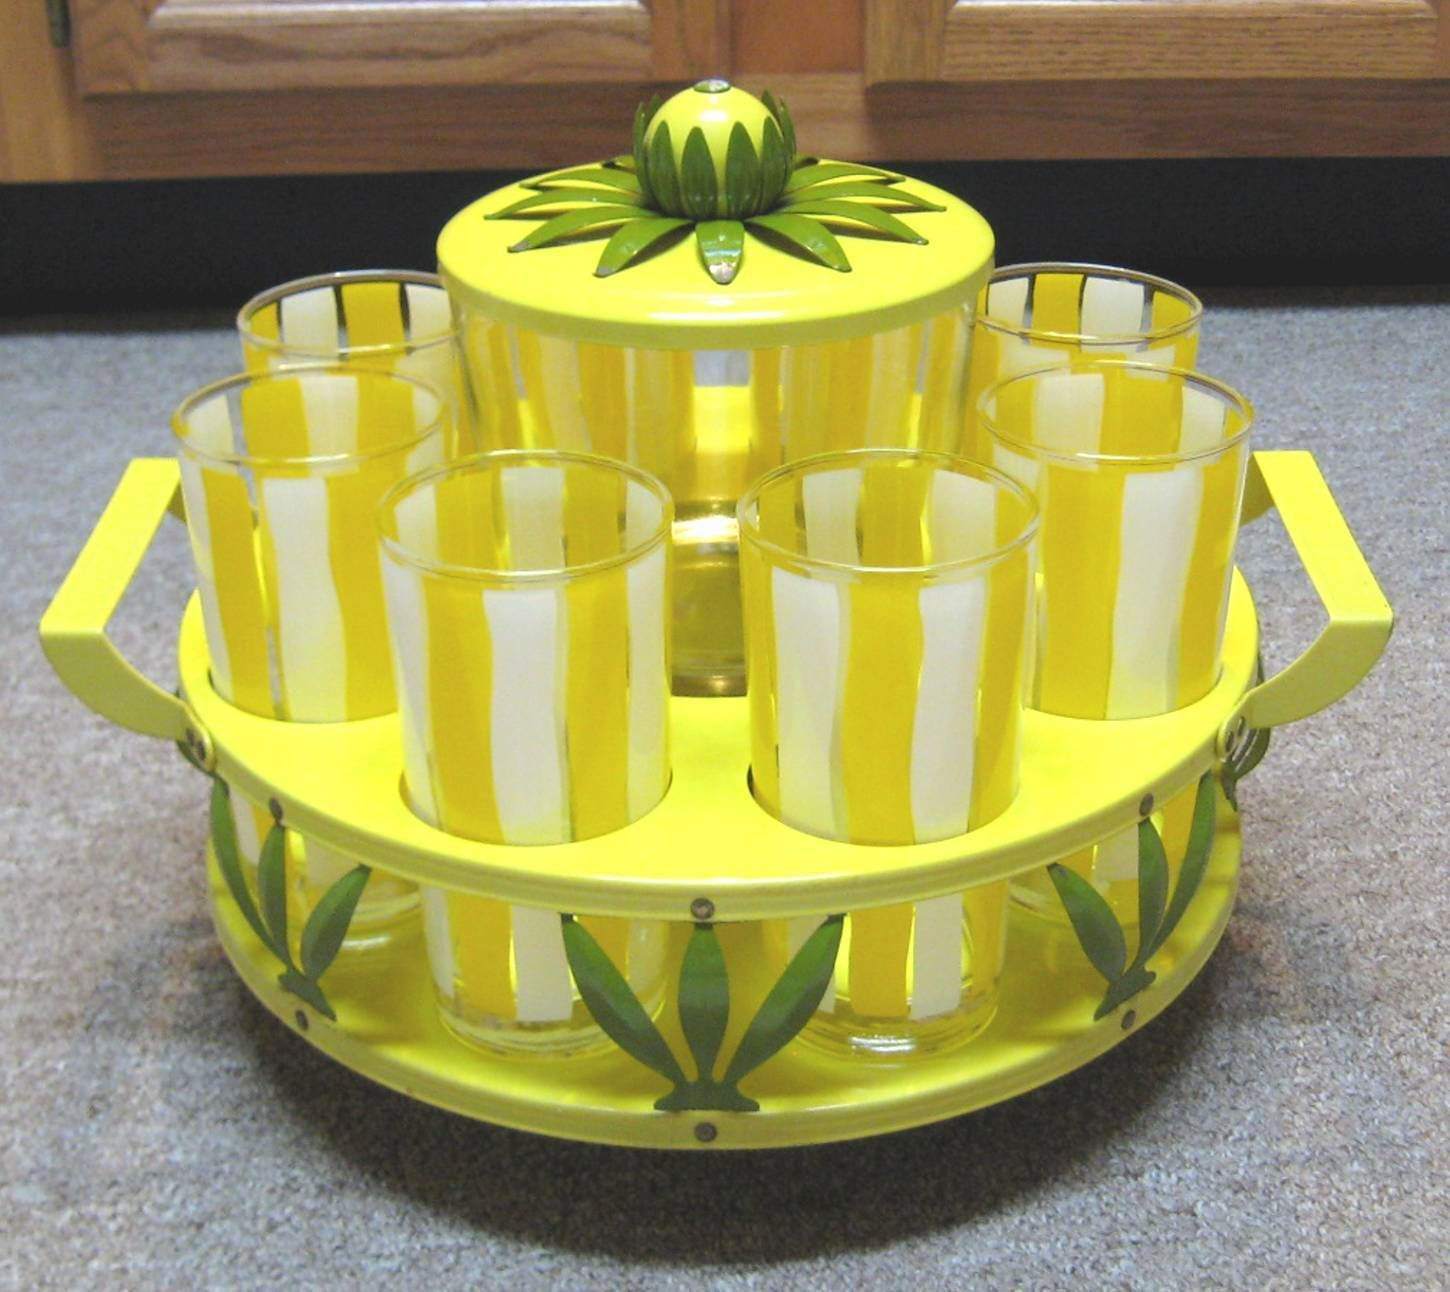 Details about Vtg Mid Century Mod Yellow Metal Daisy Caddy ...